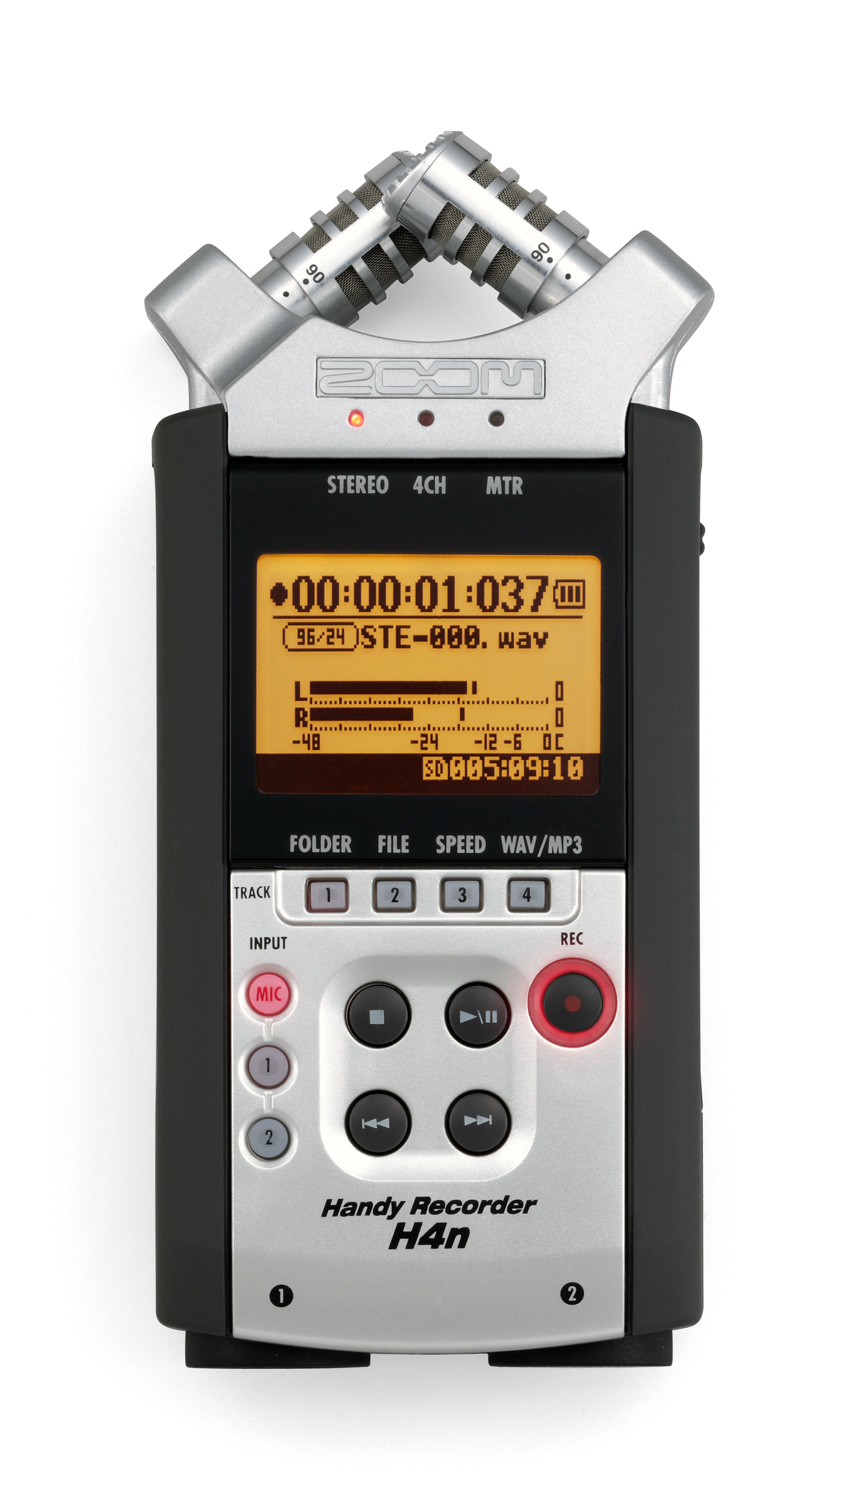 Chapter 8 Getting To Work Digital Sound Music Rain Effects Generator Circuit Voice Recorder Figure 86 A Portable Recording Device Using Integrated Microphones In An Xy Cross Pair